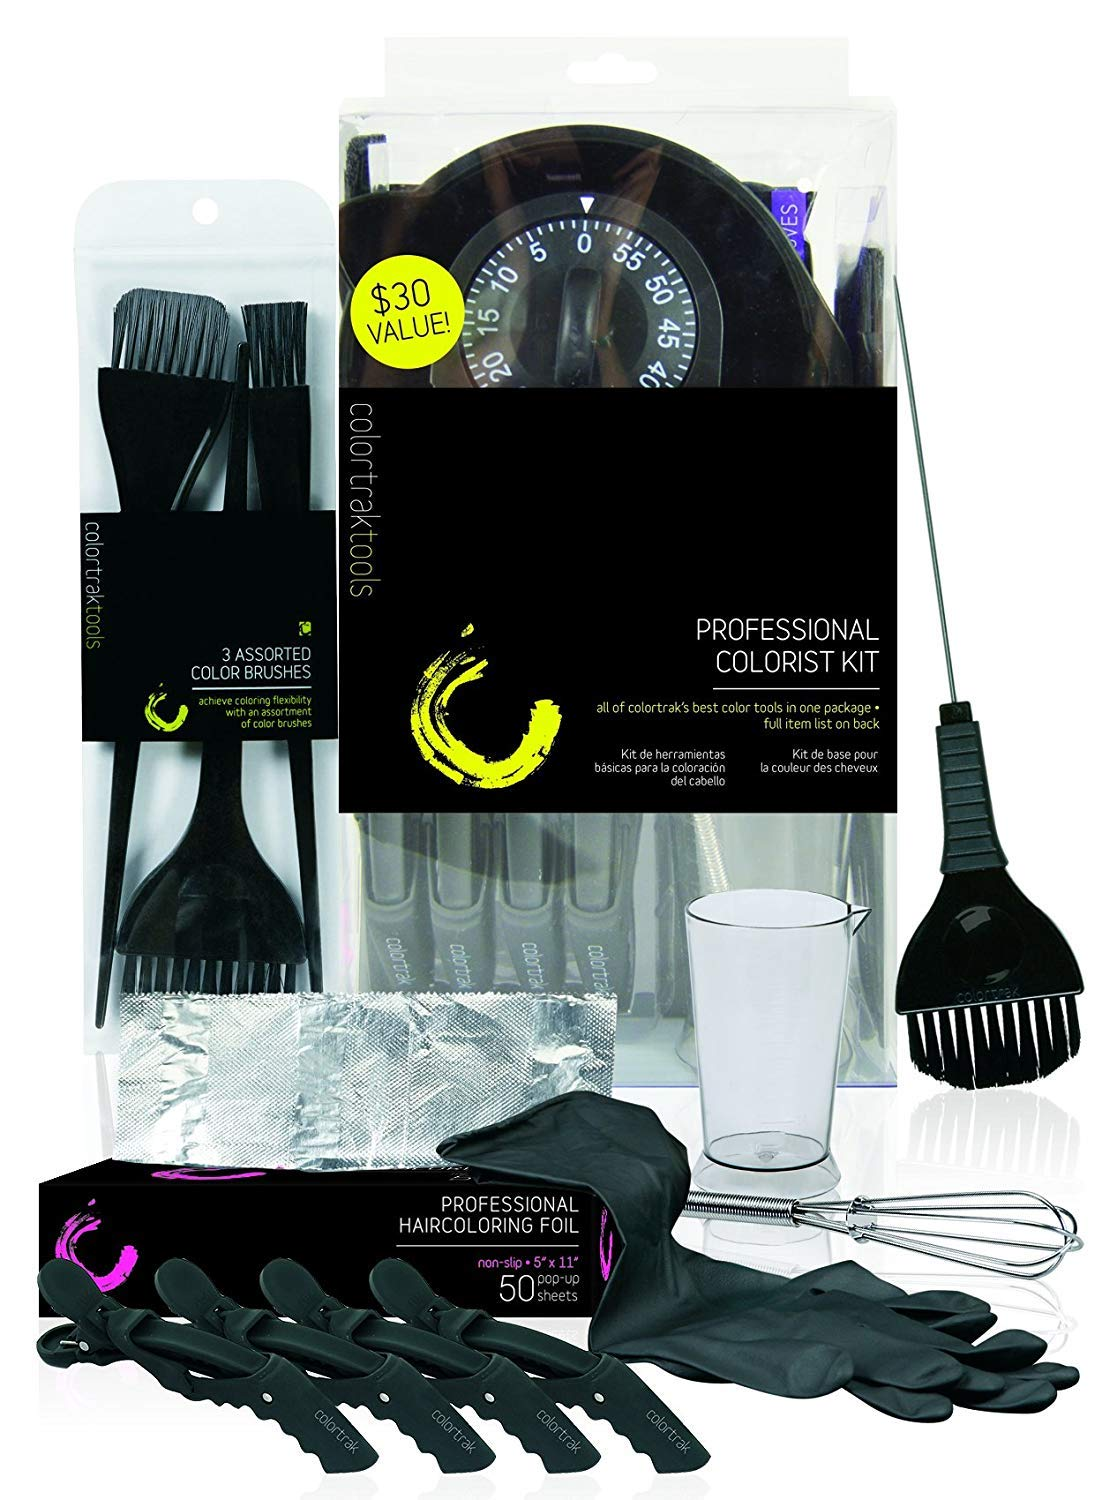 Colortrak Professional Hair Colorist Kit, 4-Pack Croc Clips, Color Beaker, Whisk, Duo Brush, 3-Pack of Brushes, Black Reusable Medium Gloves, Color Bowl, 50-Count Popup Hair Coloring Foil, Storage Box : Beauty